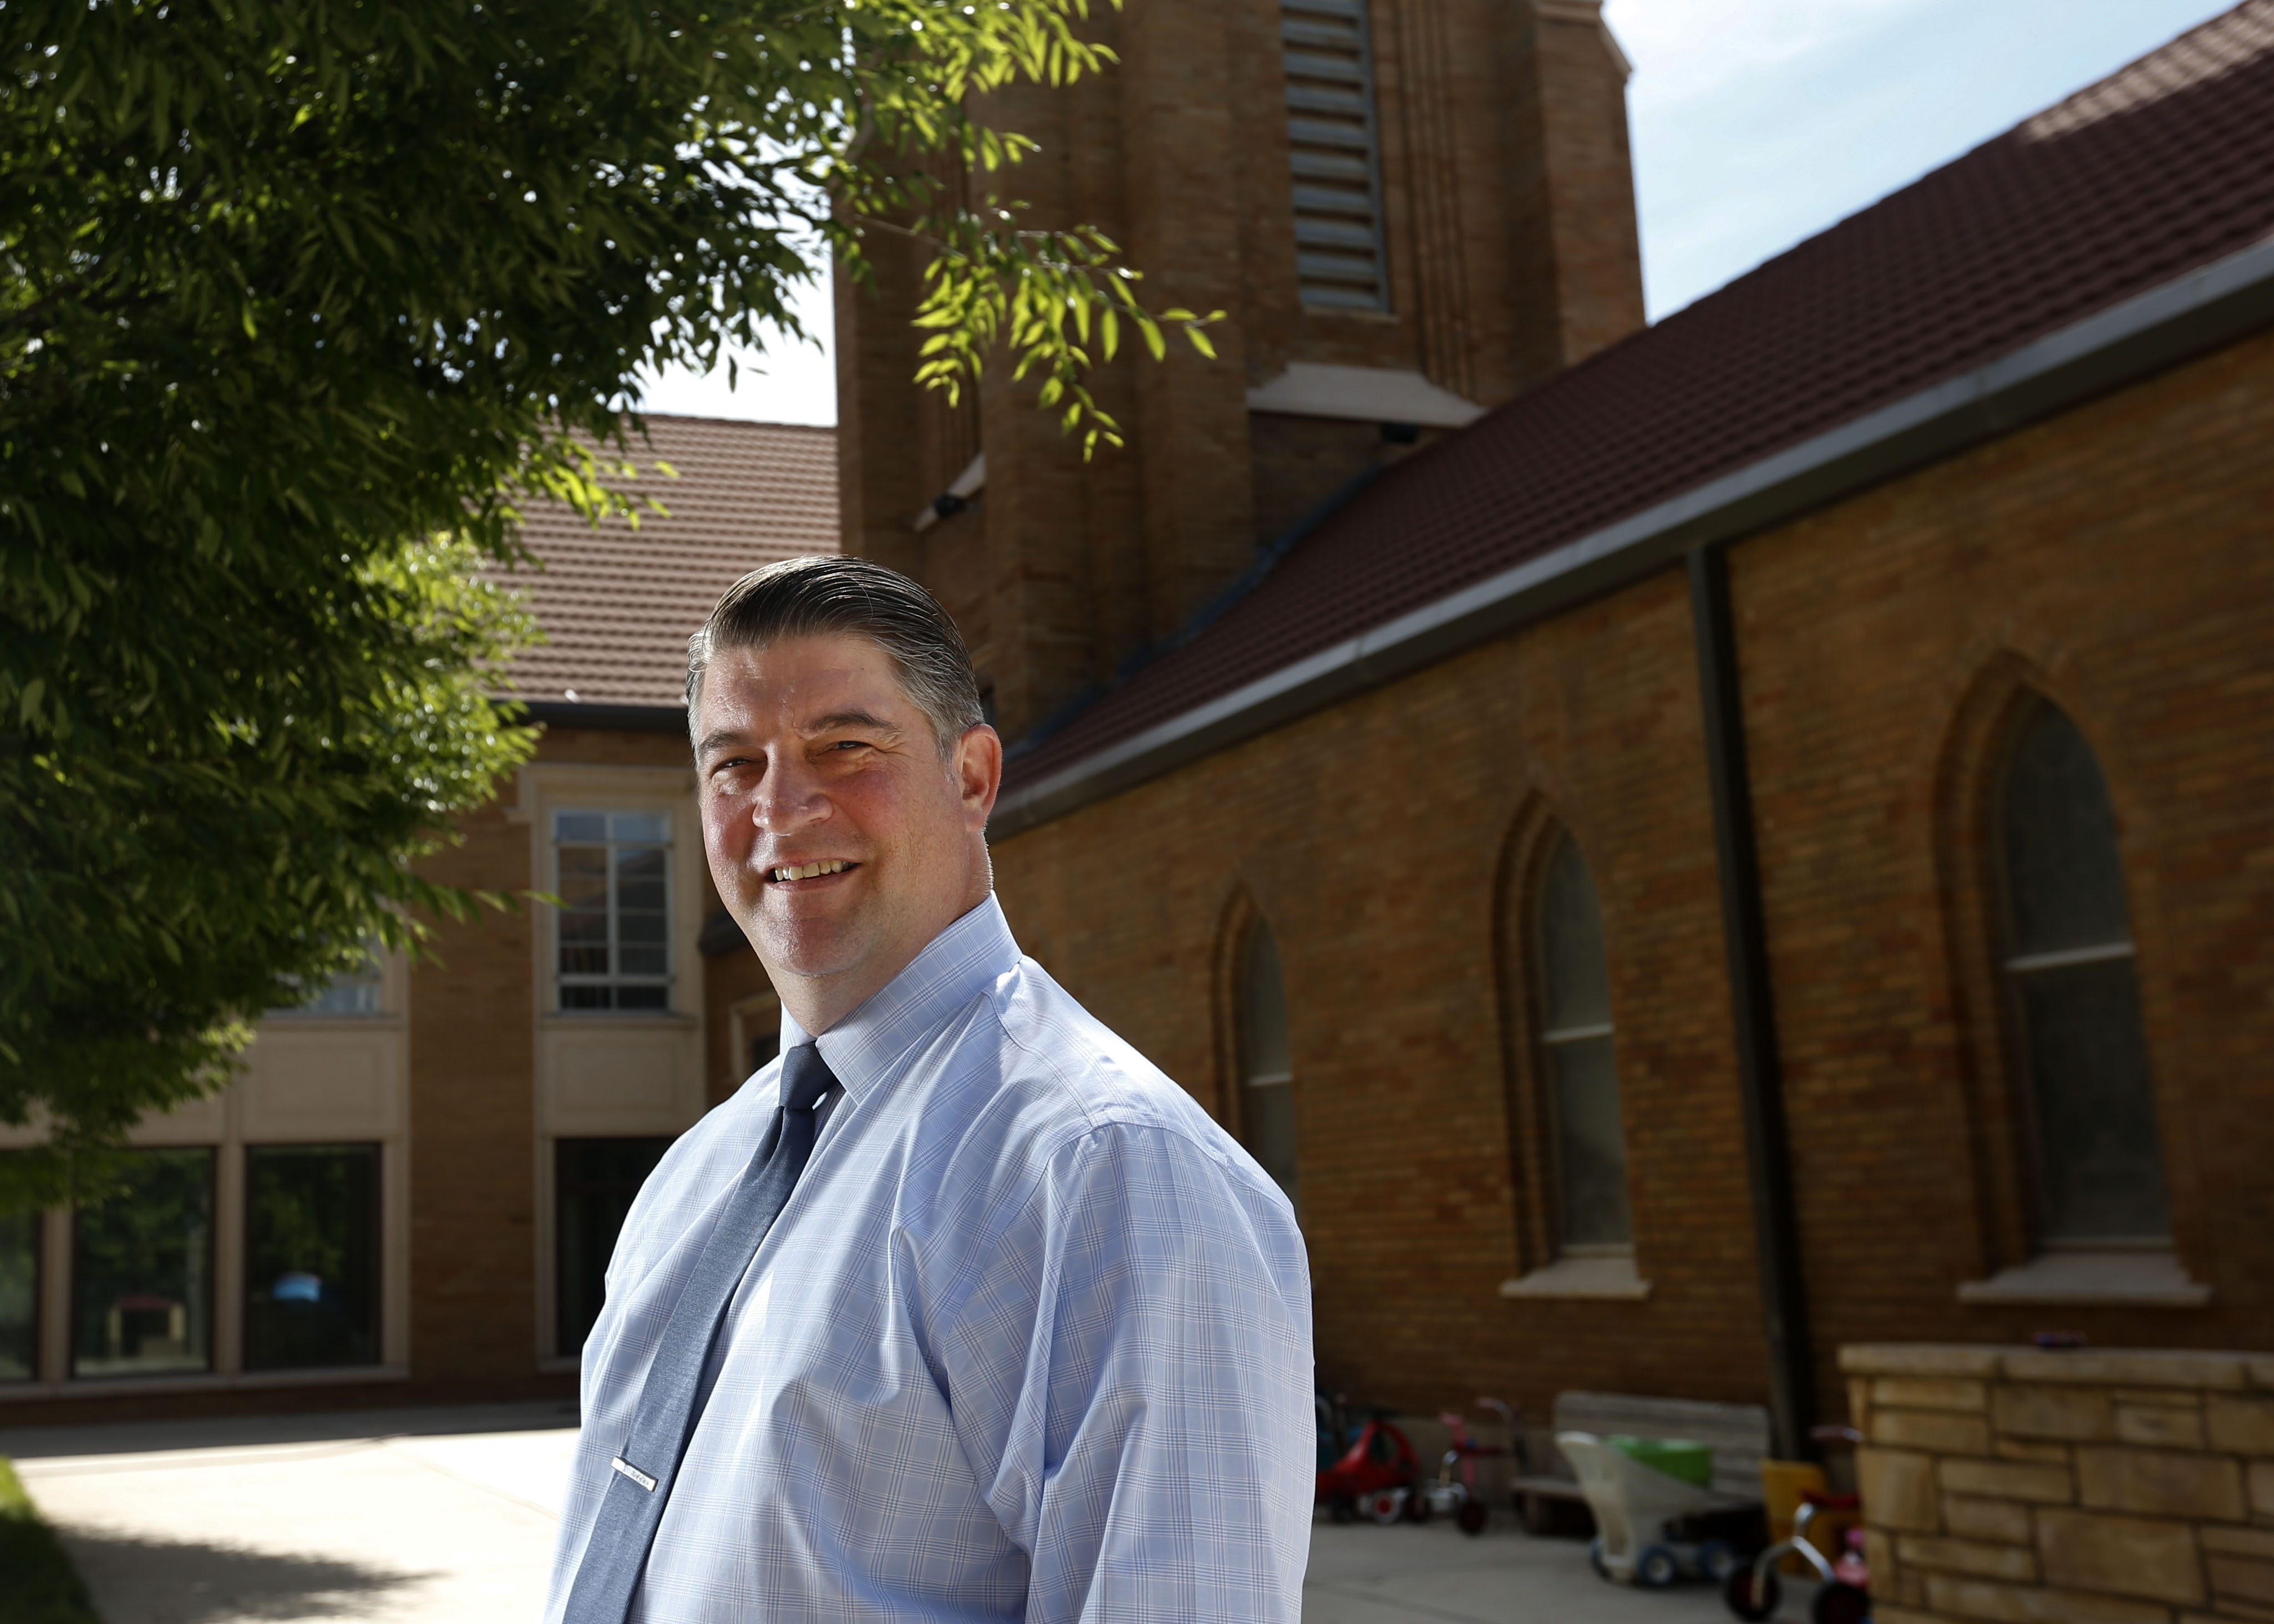 The Rev. Curtis Price is pictured in front of the First Baptist Church in Salt Lake City on Wednesday, June 24, 2020.